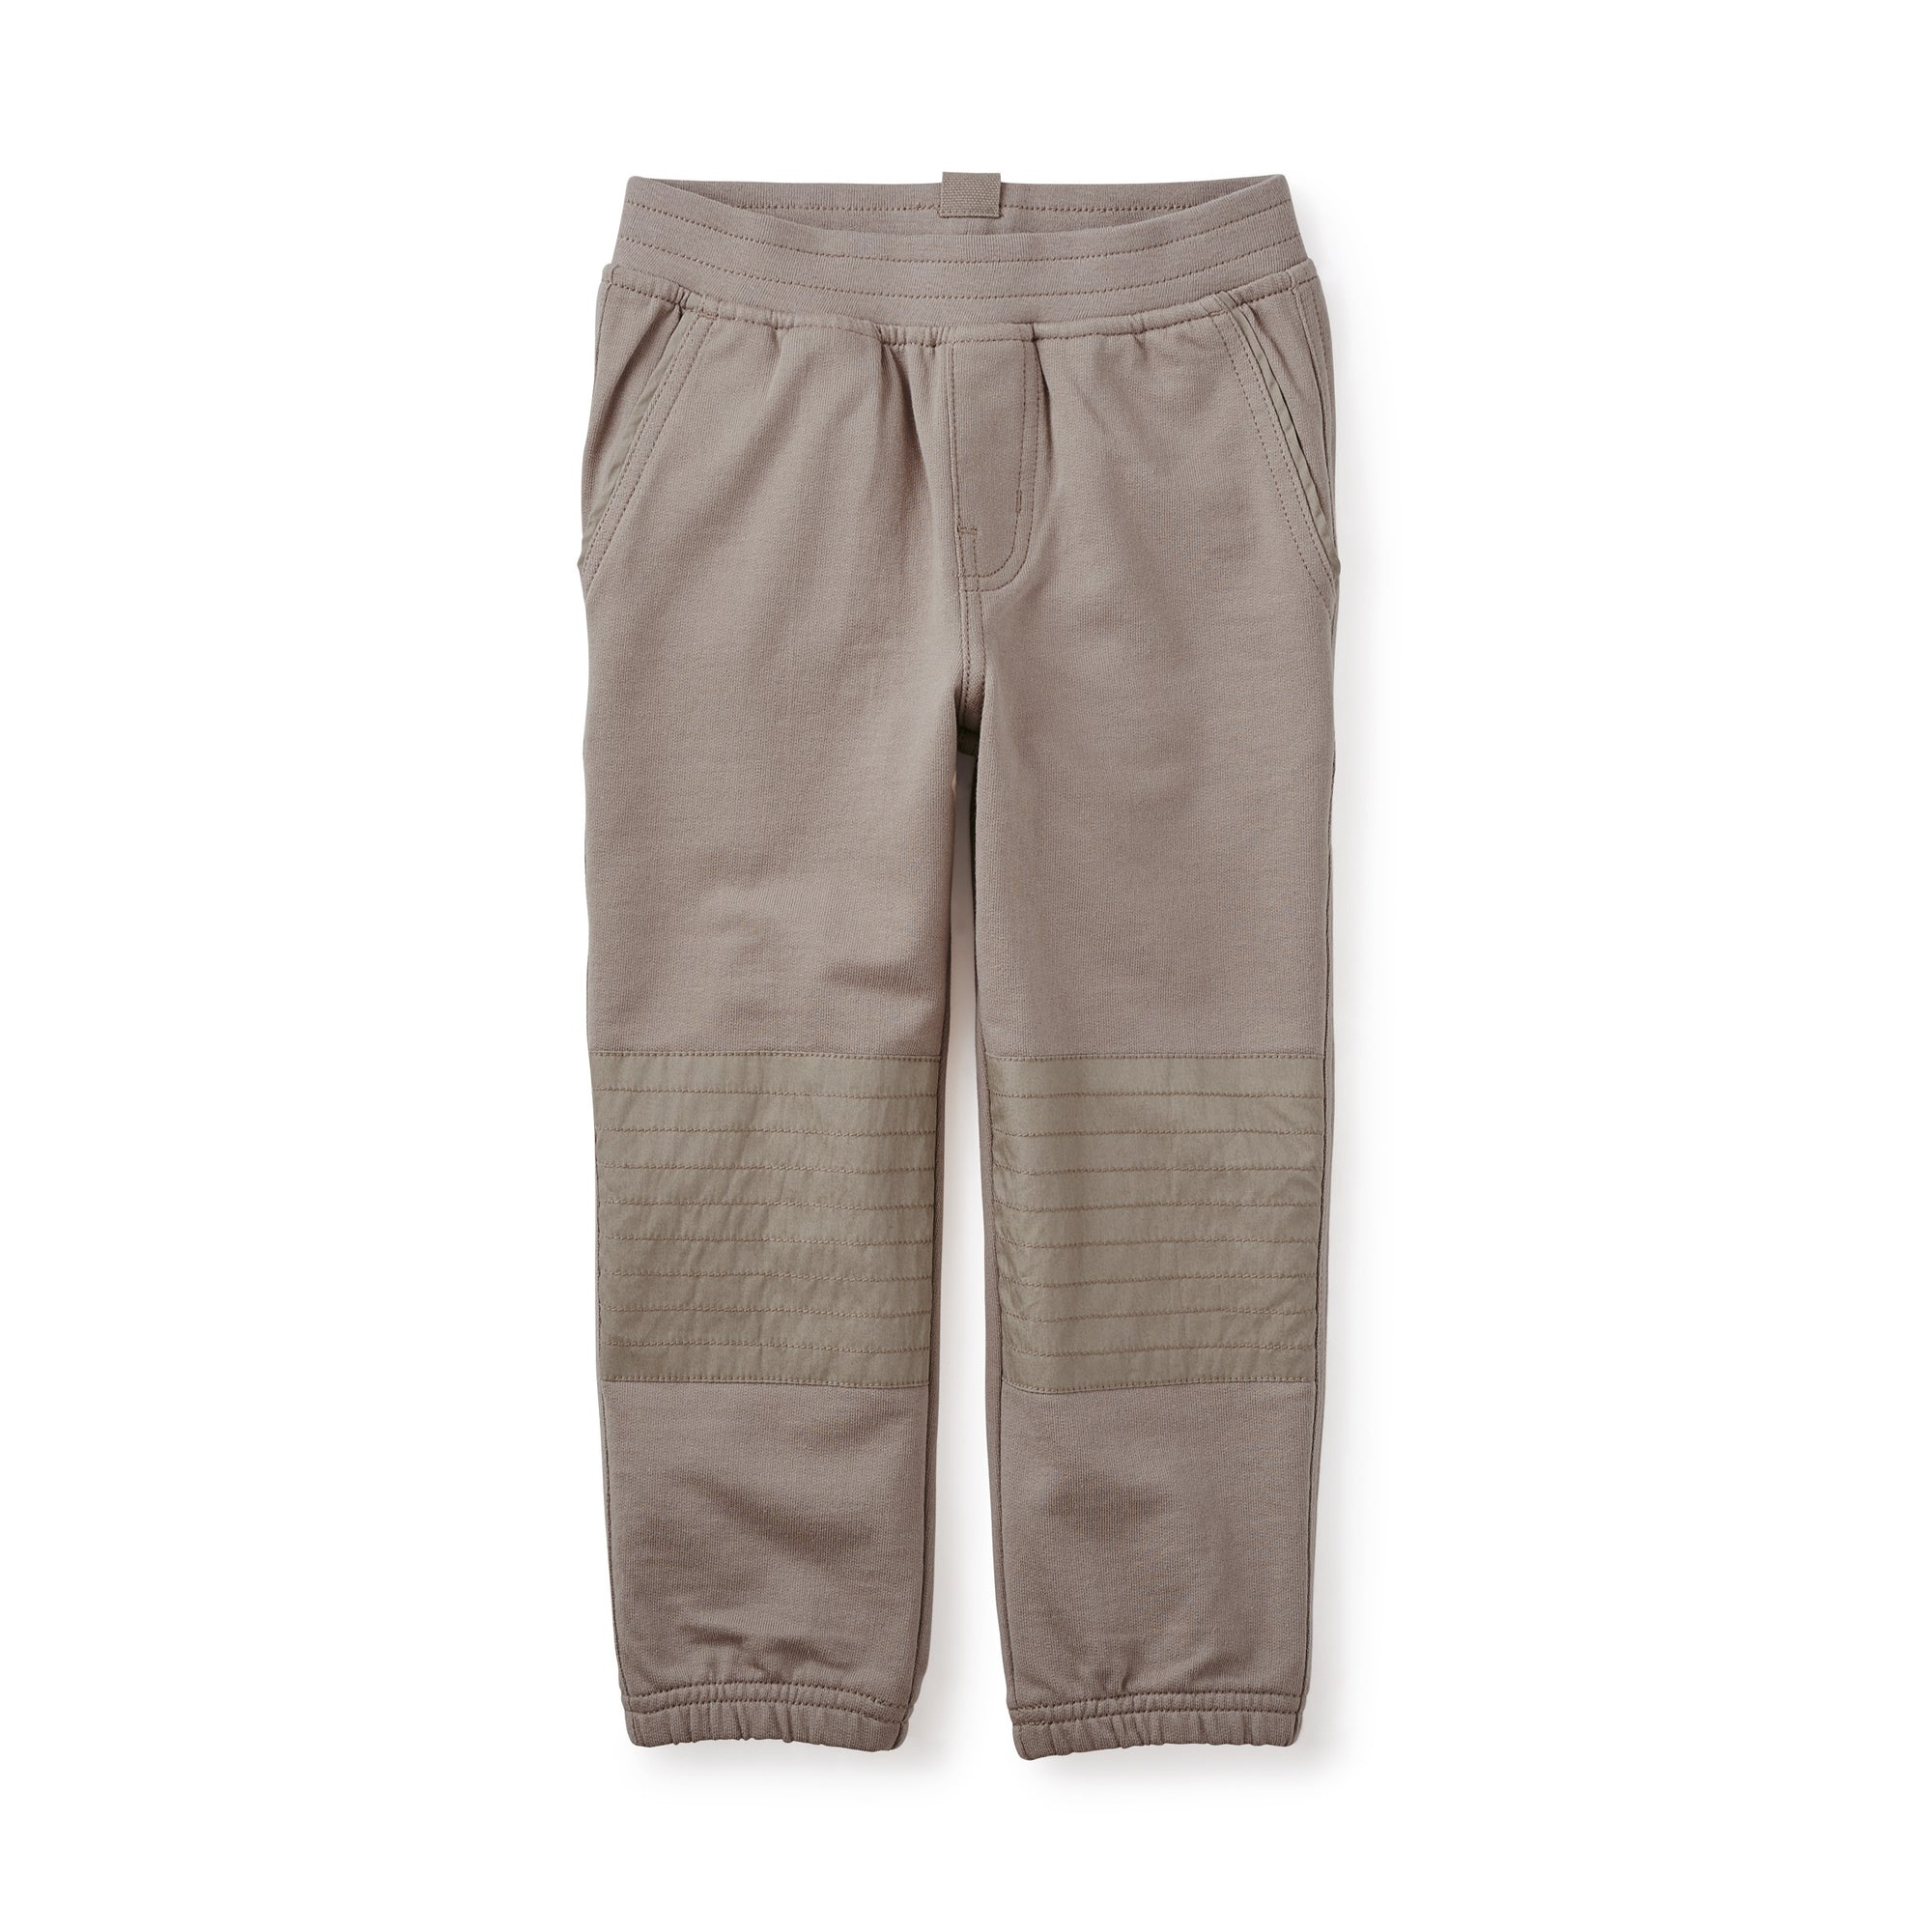 Tea Collection French Terry Moto Pants - Paper Bag